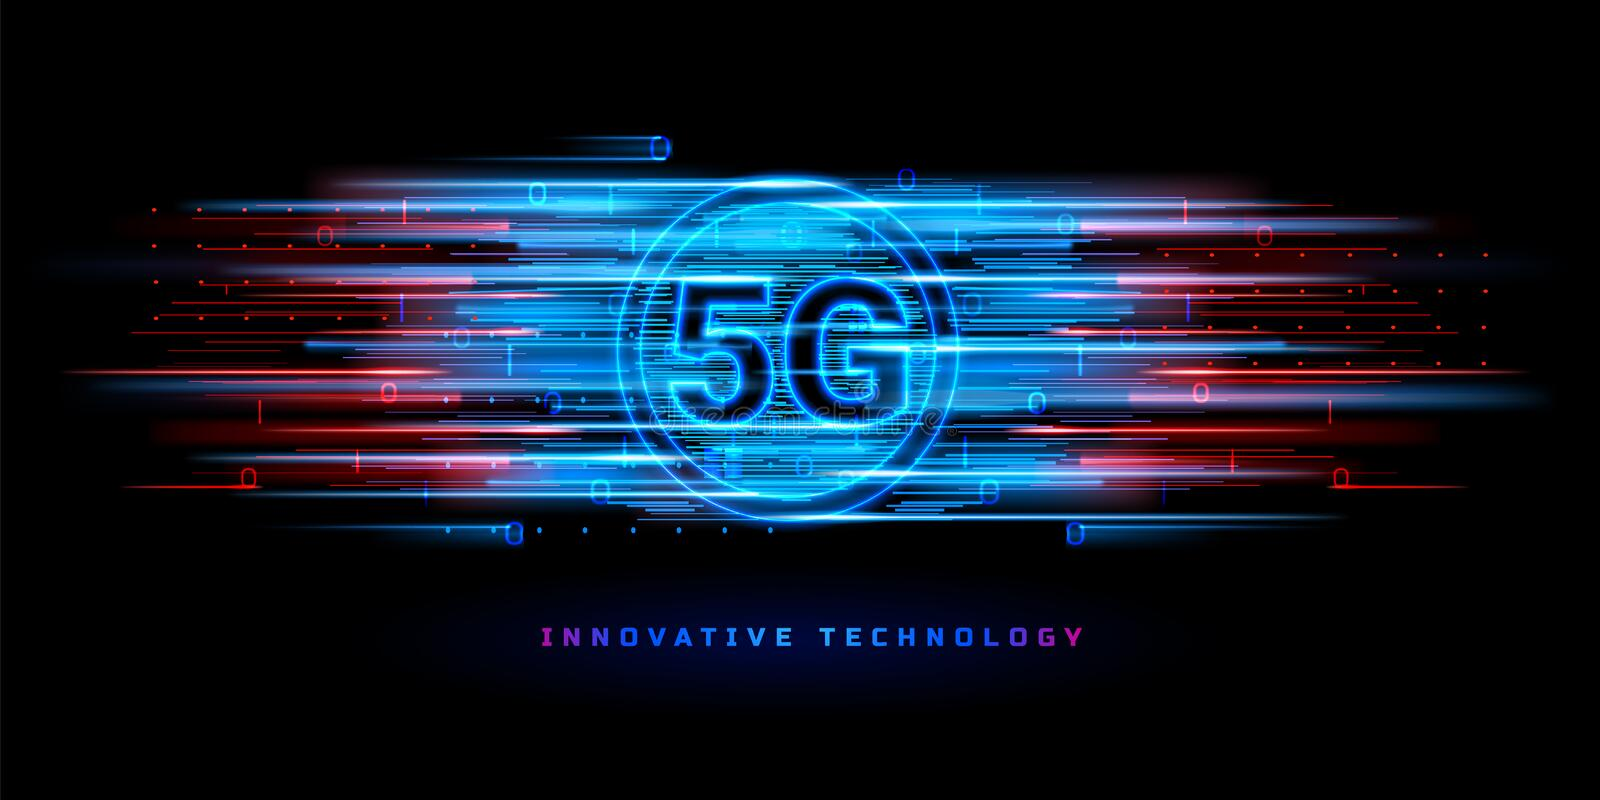 5g wireless connection for technology banner. Binary data flowing through 5g wireless connection for technology banner. Global speed internet network connection vector illustration